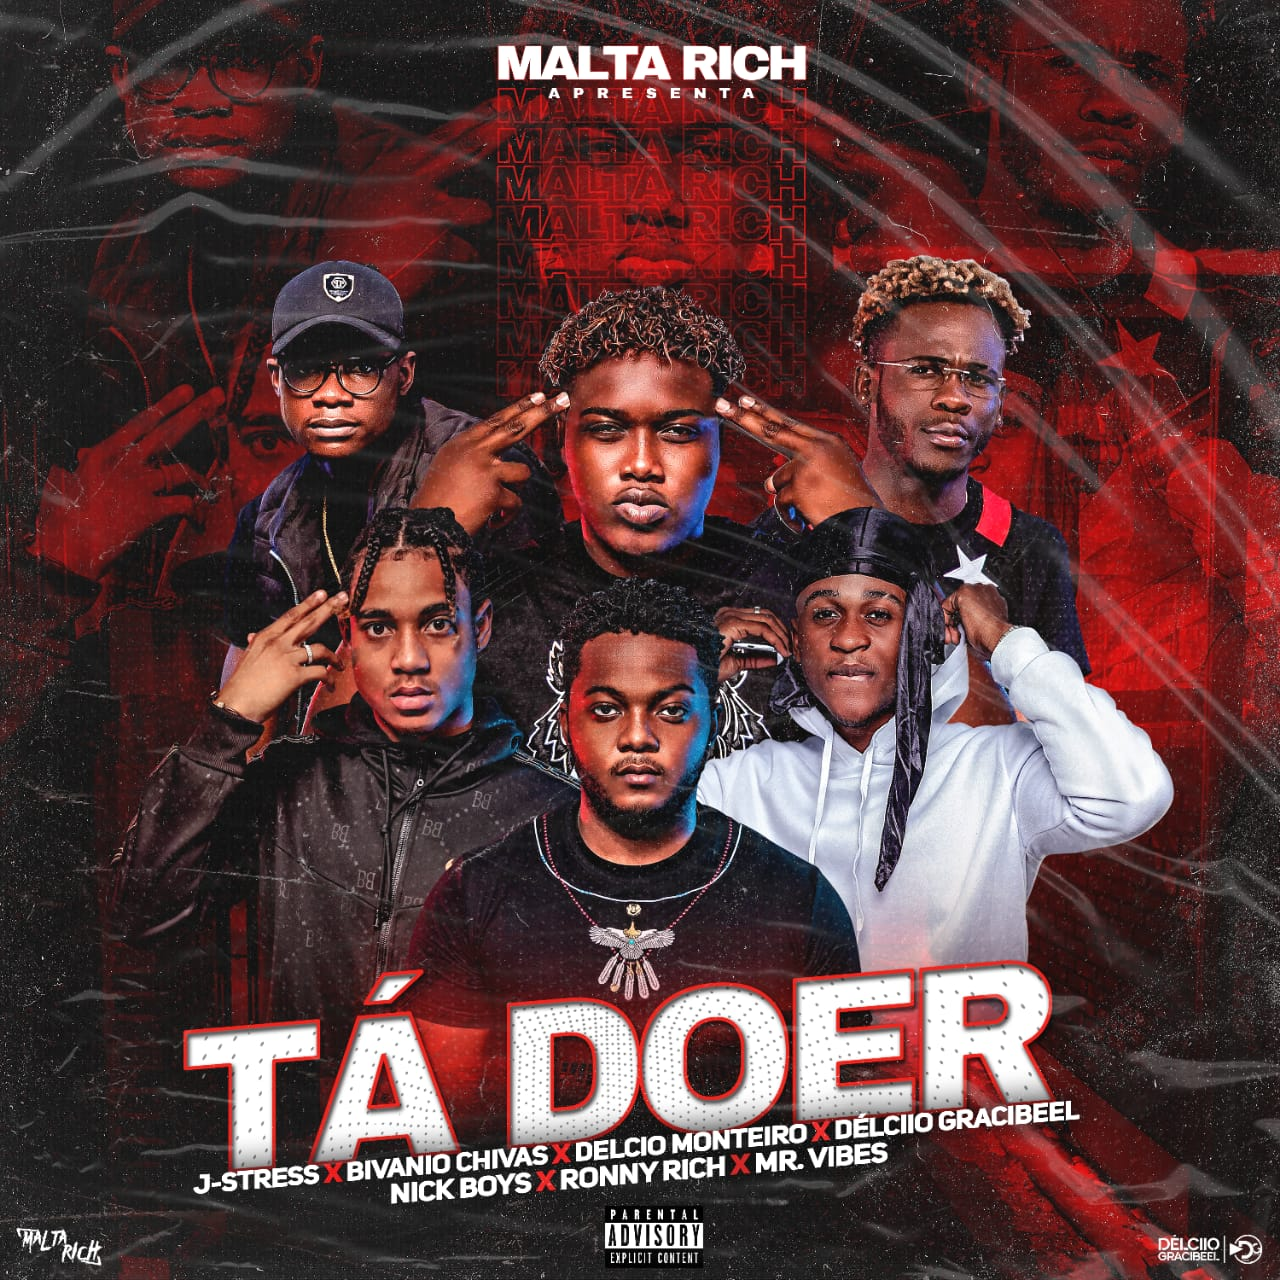 Malta Rich - Tá Doer [DOWNLOAD]